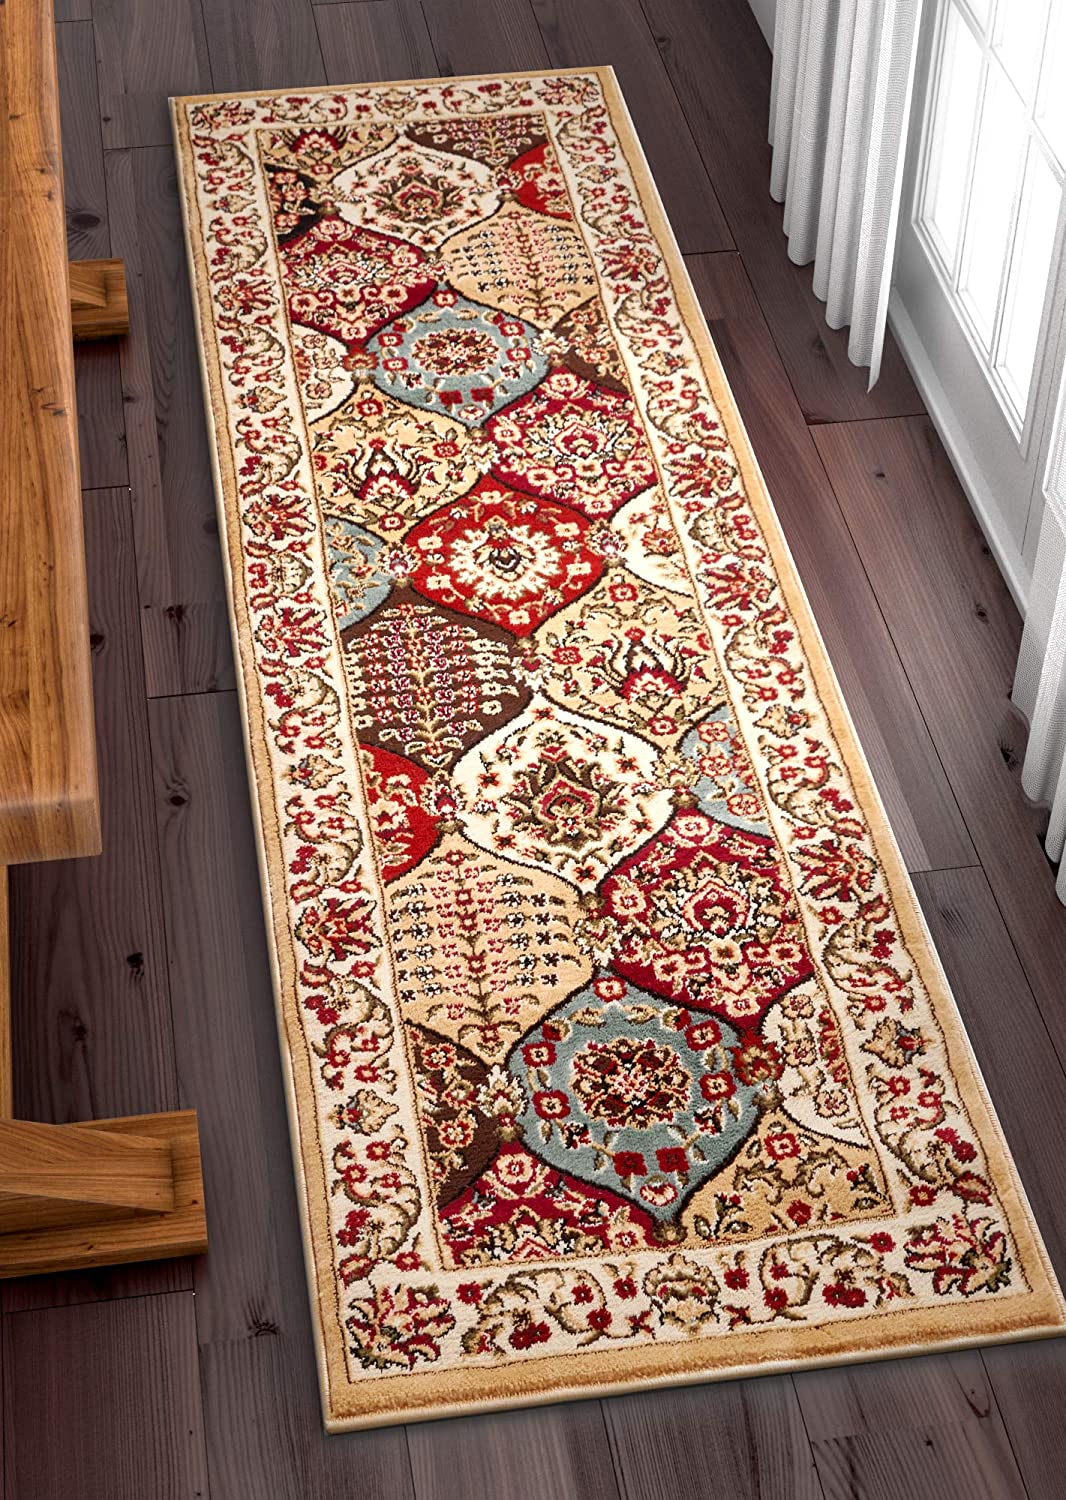 Well Woven Bargain Award Barclay Wentworth Panel Traditional Rug Ivory Area 2'